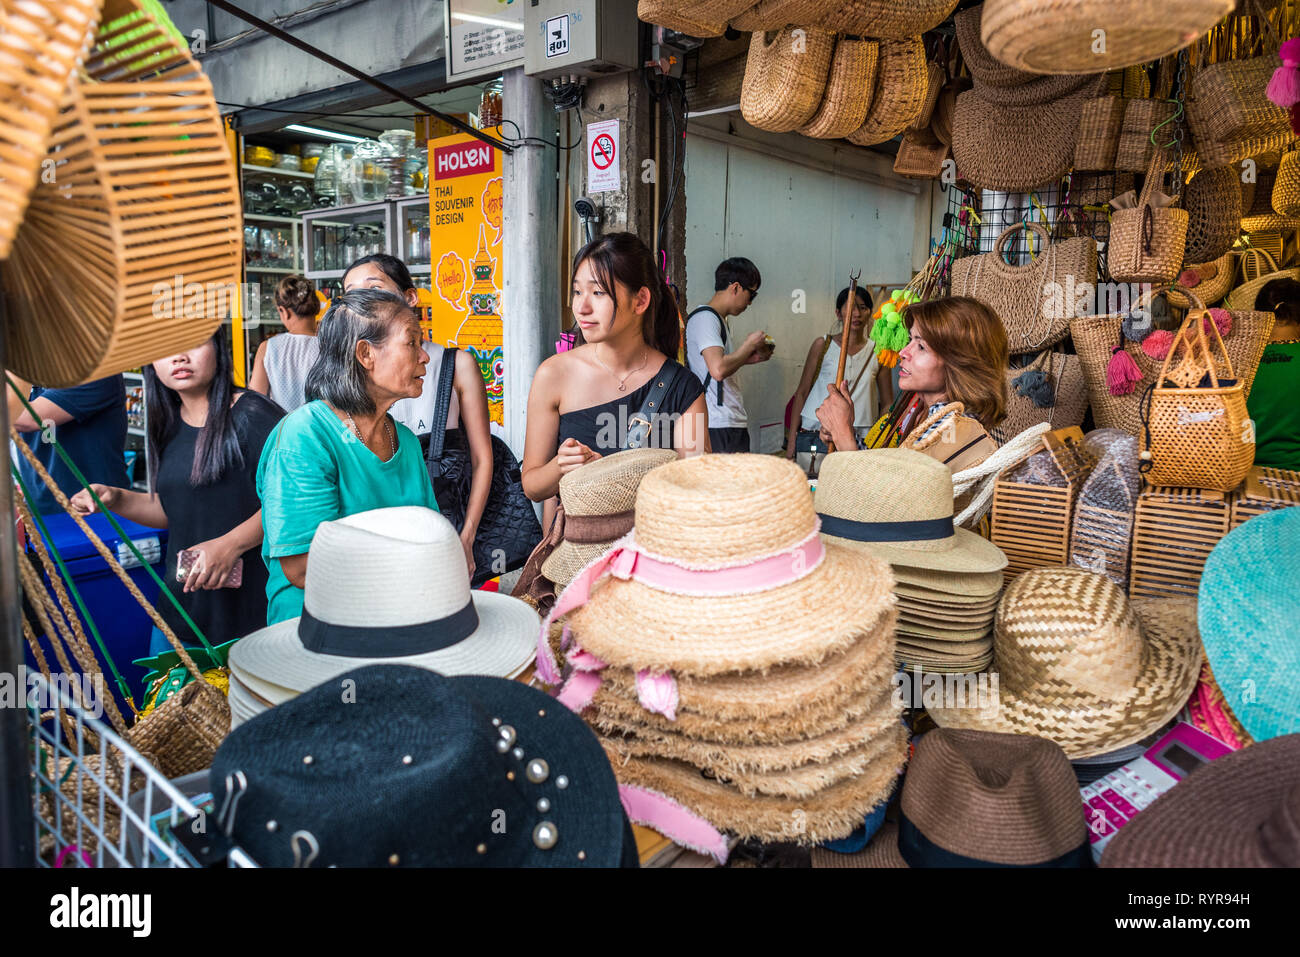 Bangkok, Thailand - May 13, 2018: three women talk to each other behind a shop counter filled with hats and wicker bags at Chatuchak Weekend Market. Stock Photo